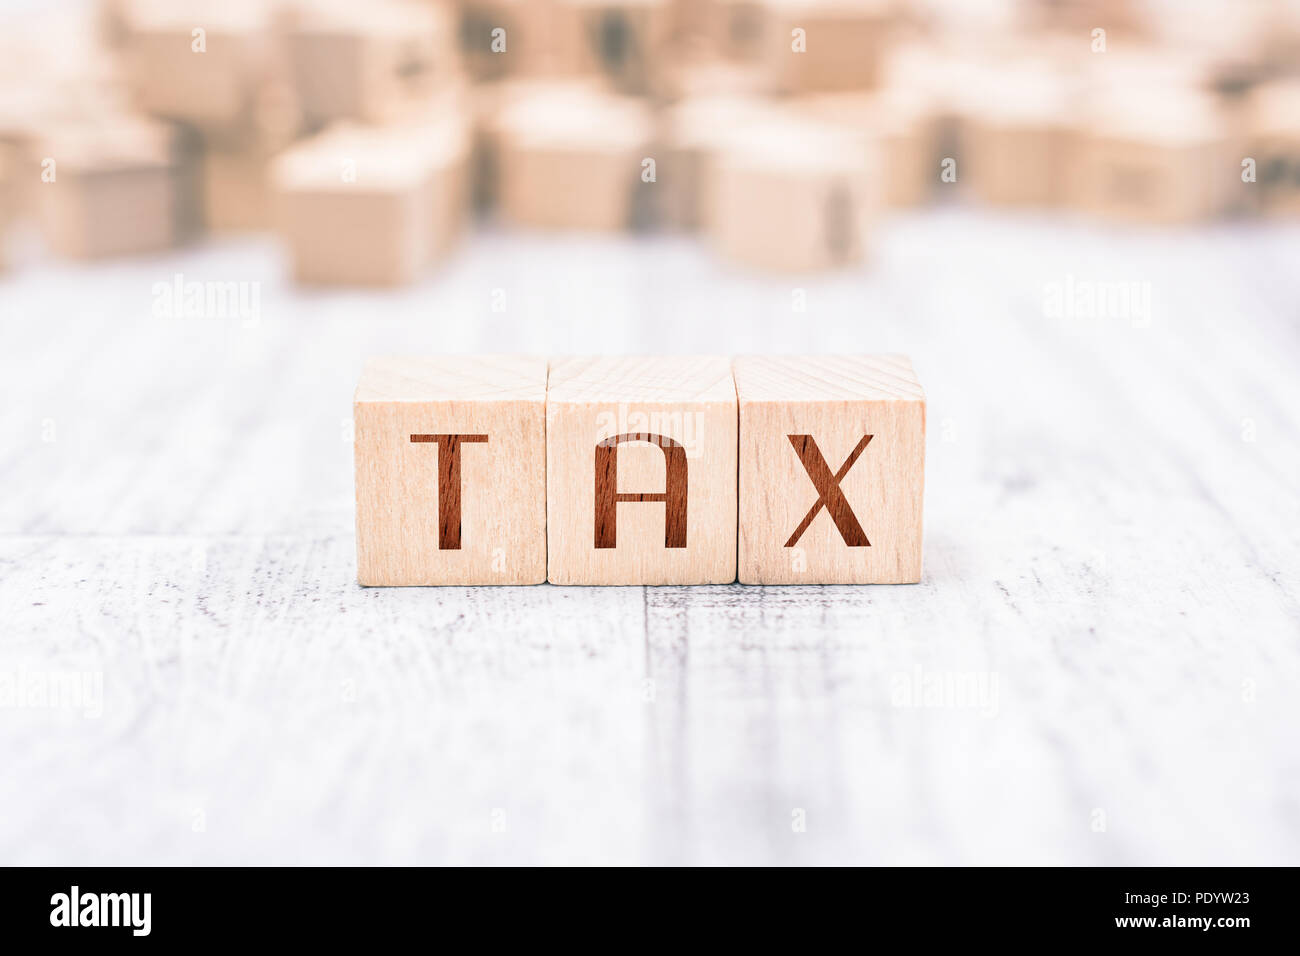 The Word Tax Formed By Wooden Blocks On A White Table, Reminder Concept Stock Photo